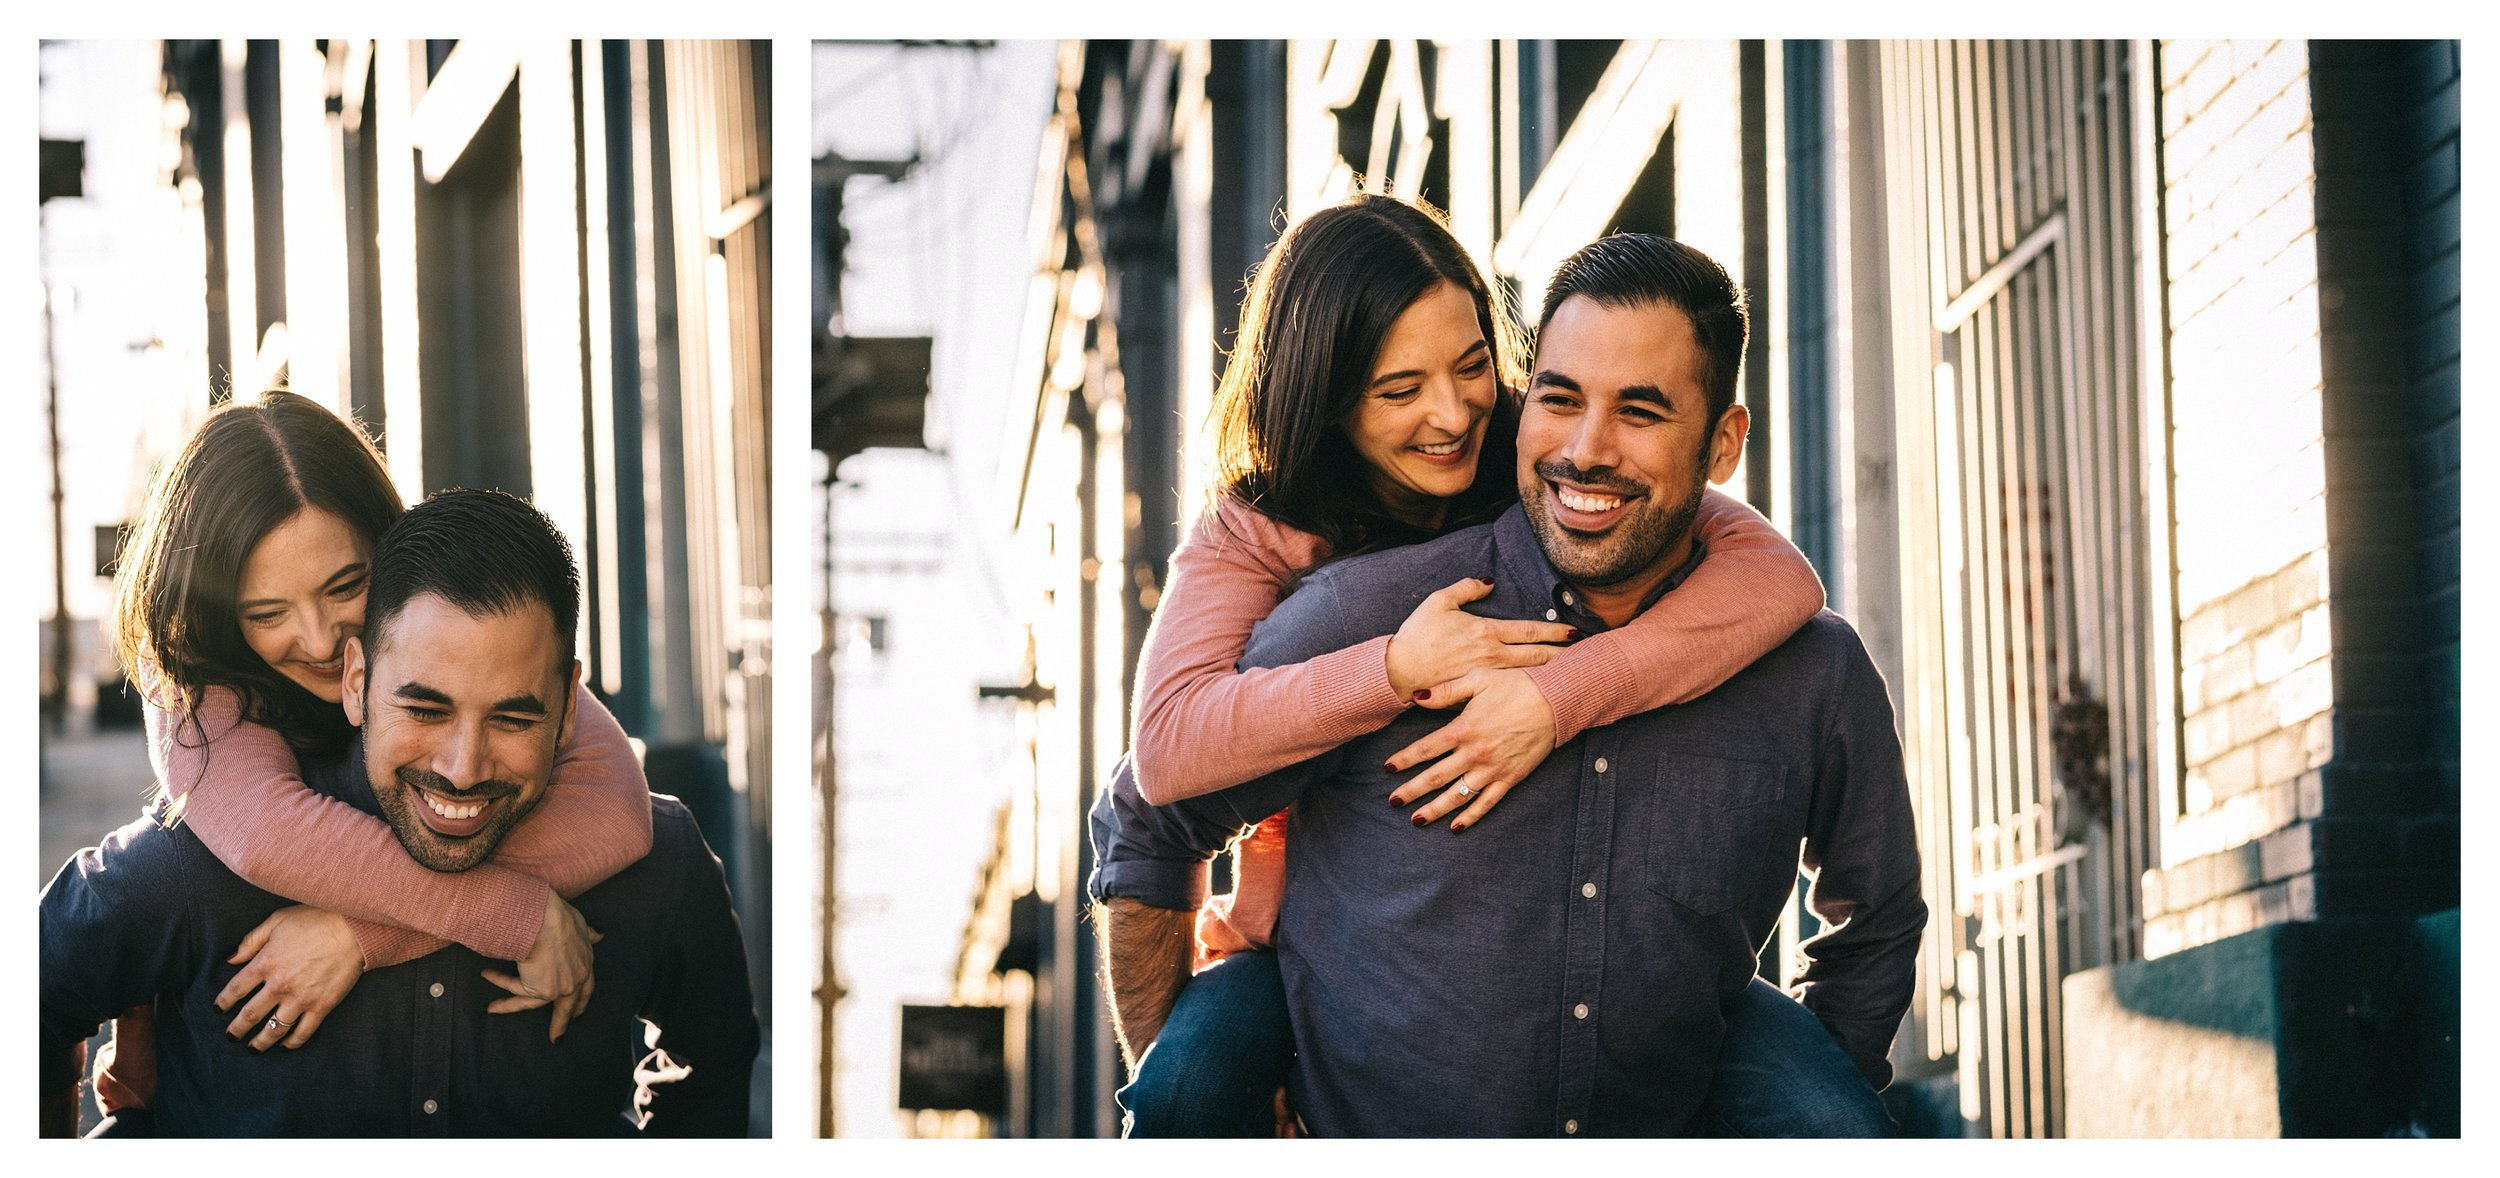 Los_Angeles_Engagement_Session_Nick_Mueller_Photography_6.jpg